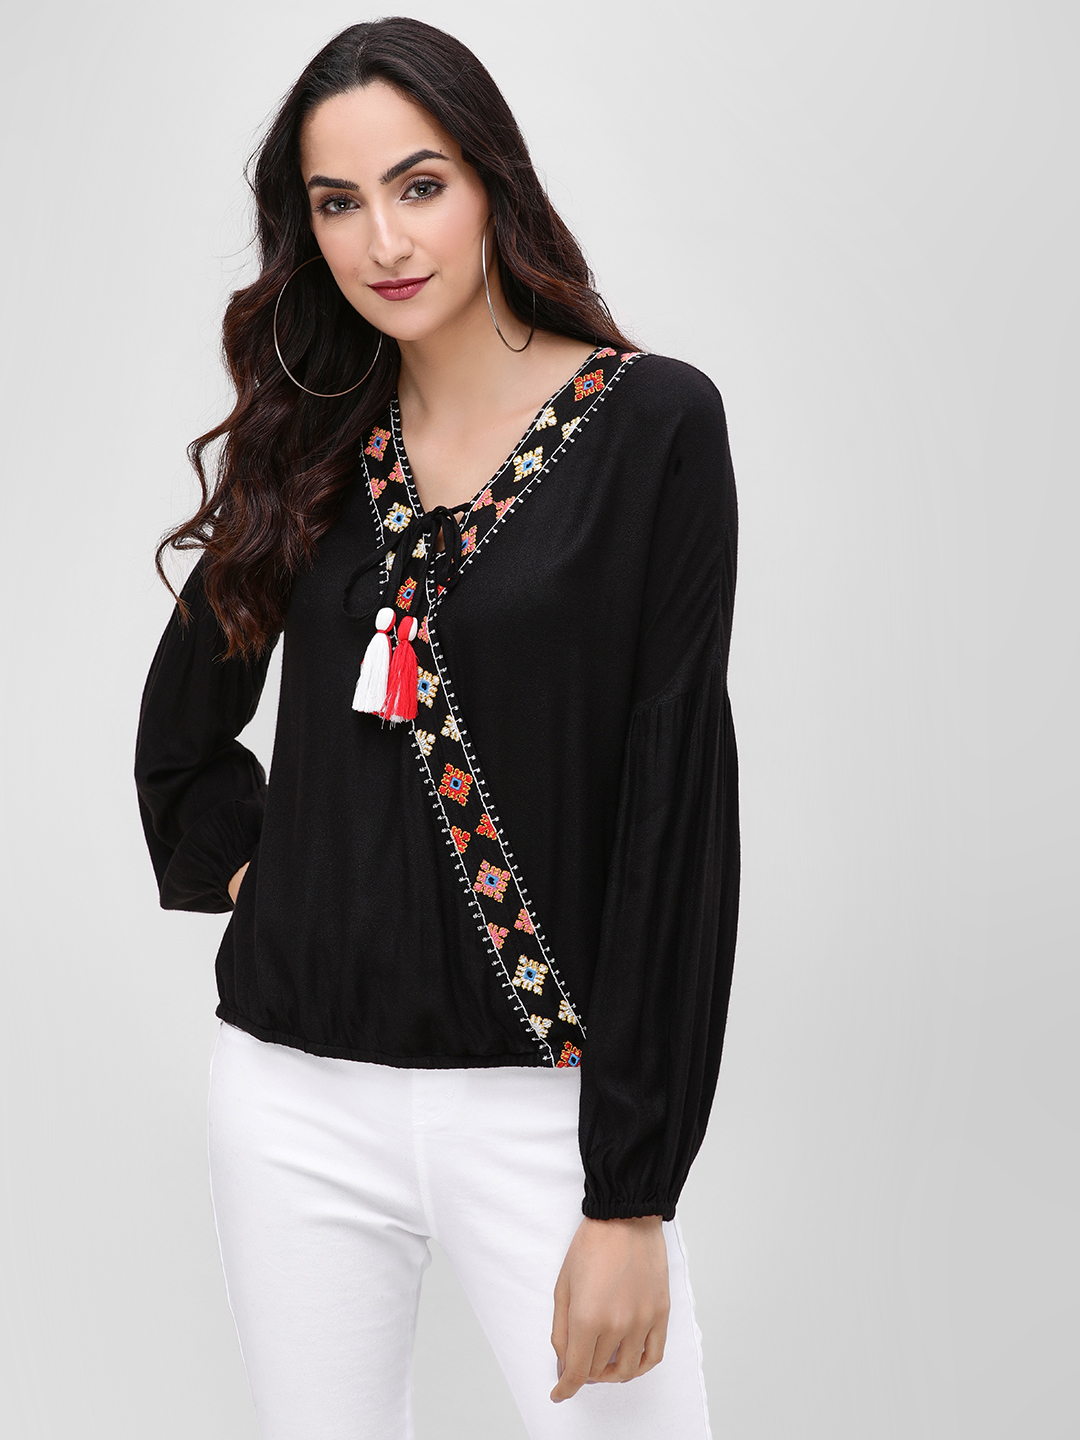 Rena Love Black Wrap Blouse With Embroidered Border 1